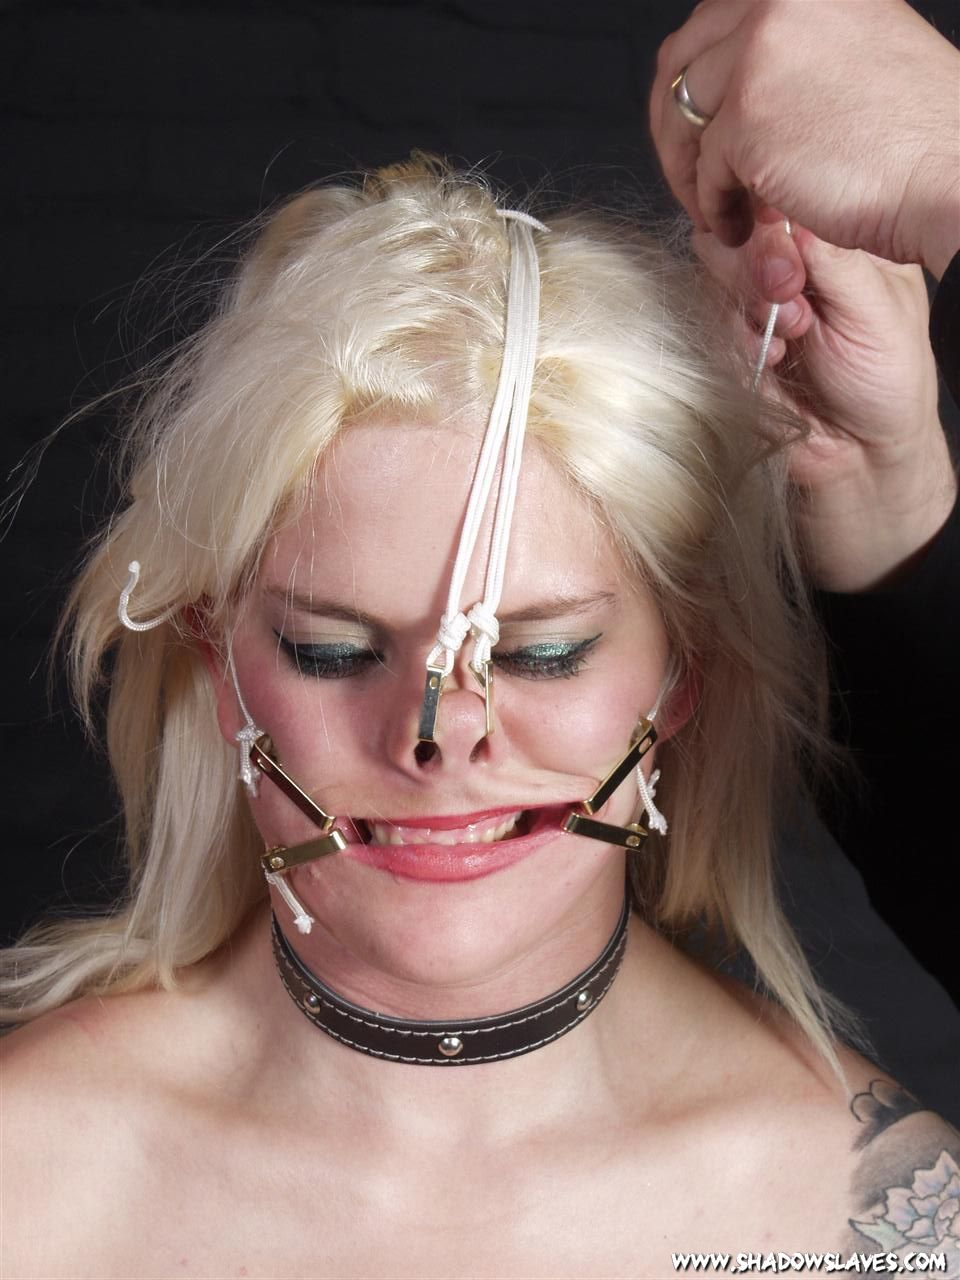 Remarkable Nose facial humiliation bdsm all business